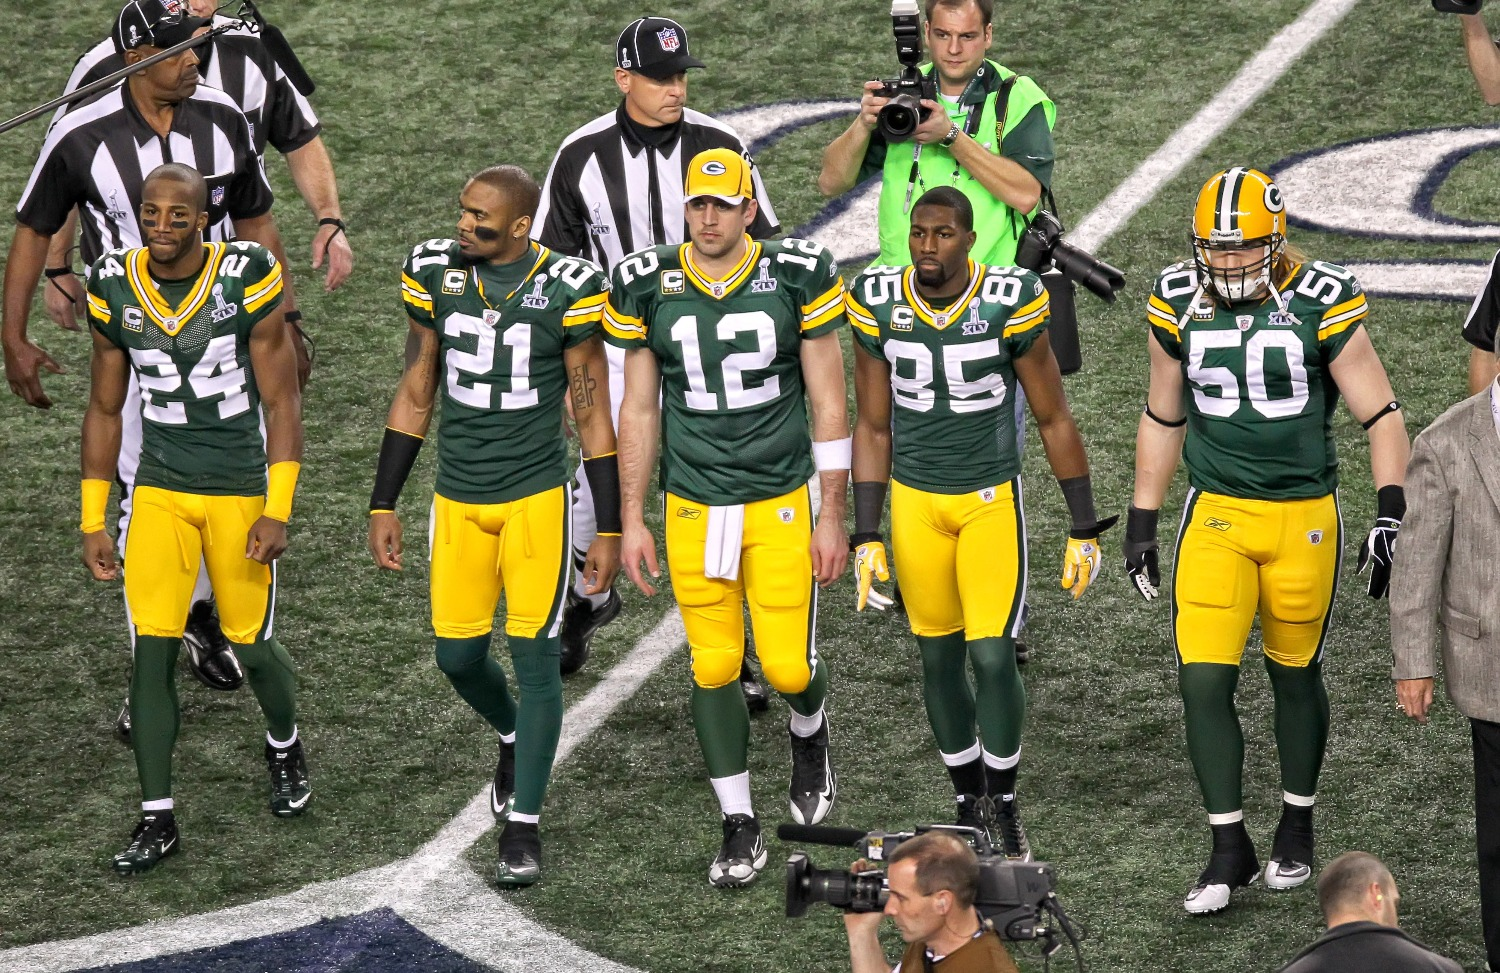 Aaron Rodgers admitted his true feelings about former Packers teammates Greg Jennings and Jermichael Finley, who have openly criticized their former quarterback in the past.